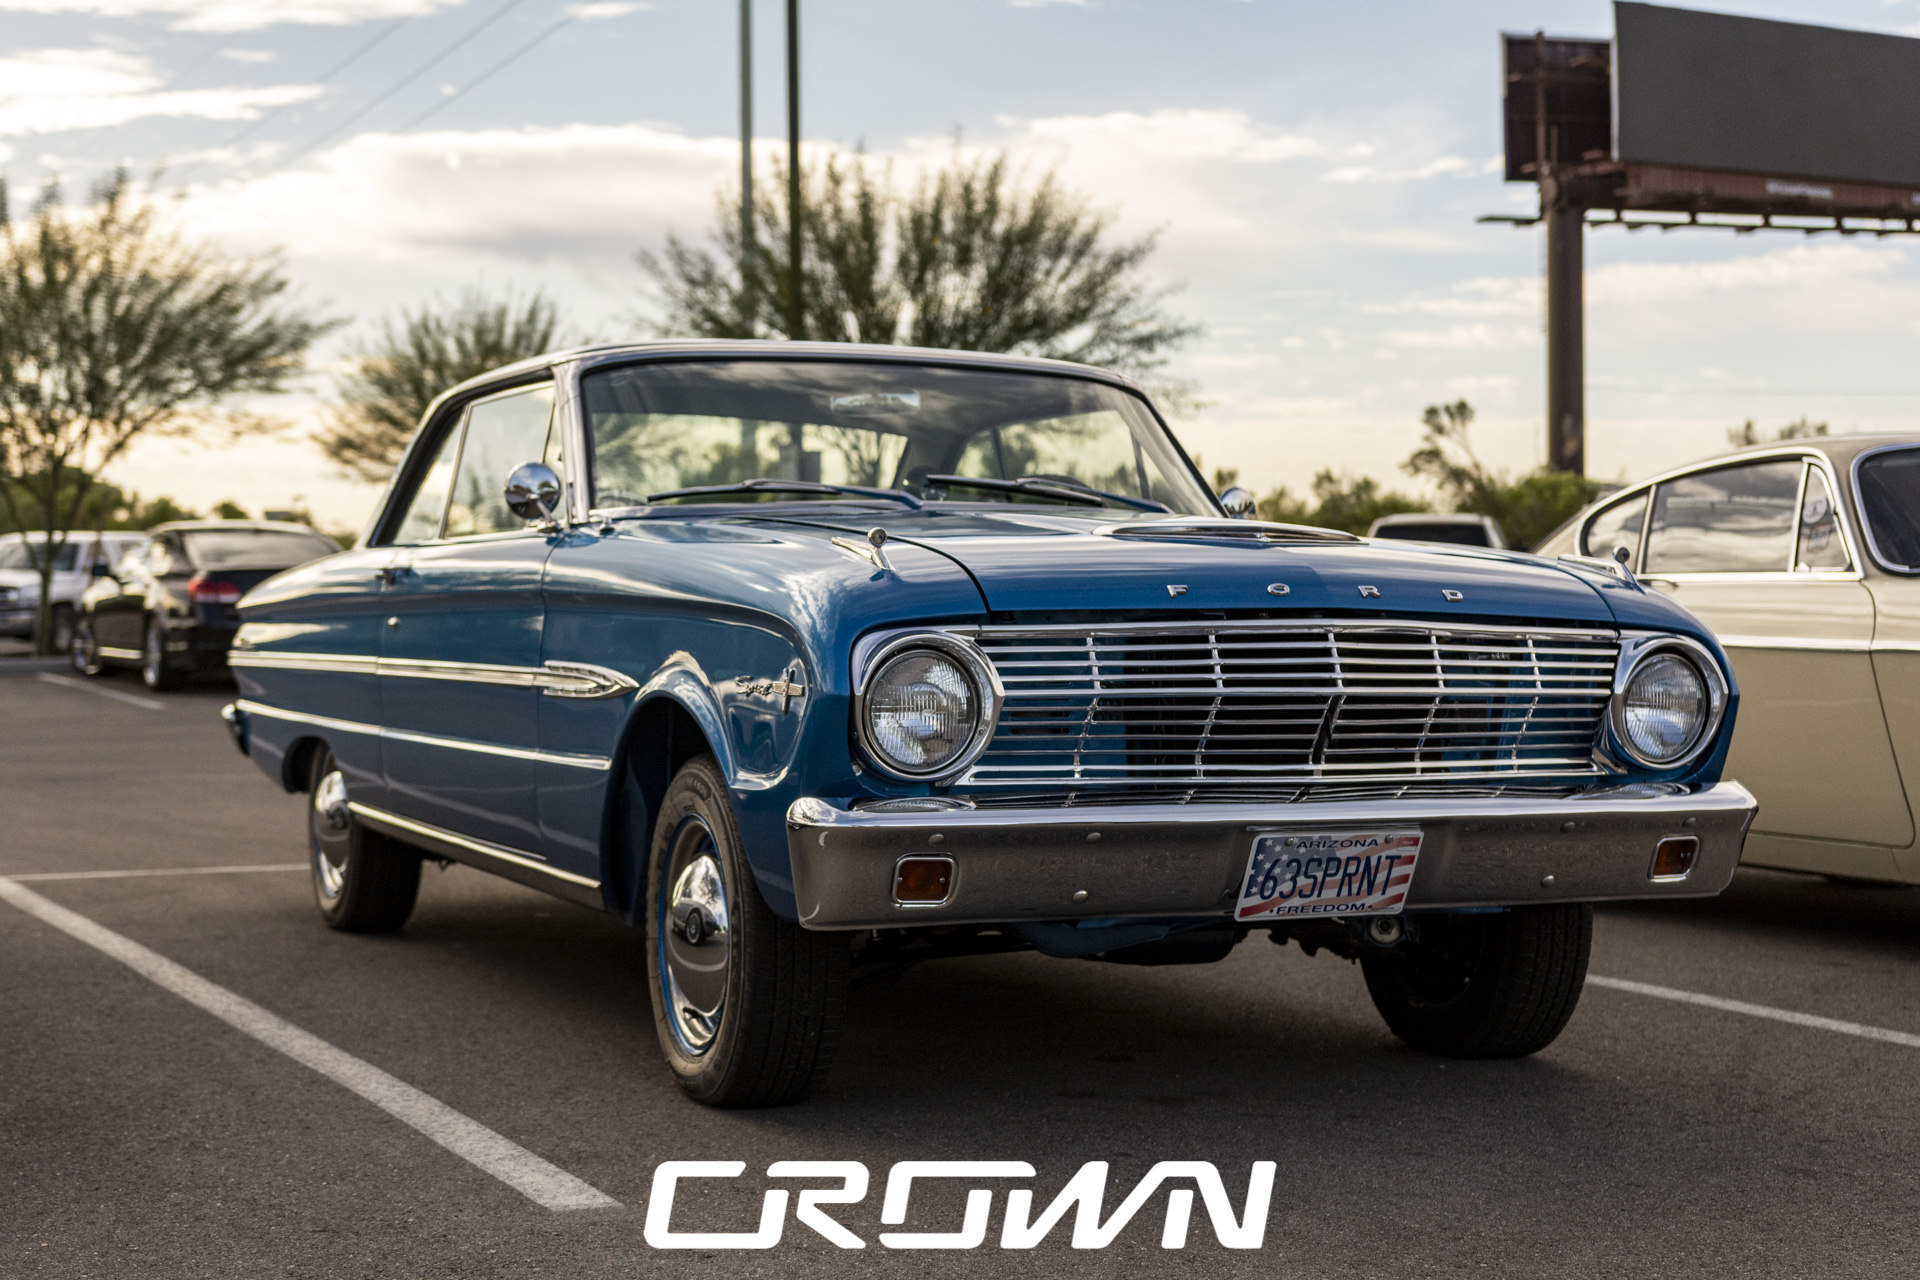 1963 Ford Falcon Sprint at Cars and coffee and clubs Tucson Arizona